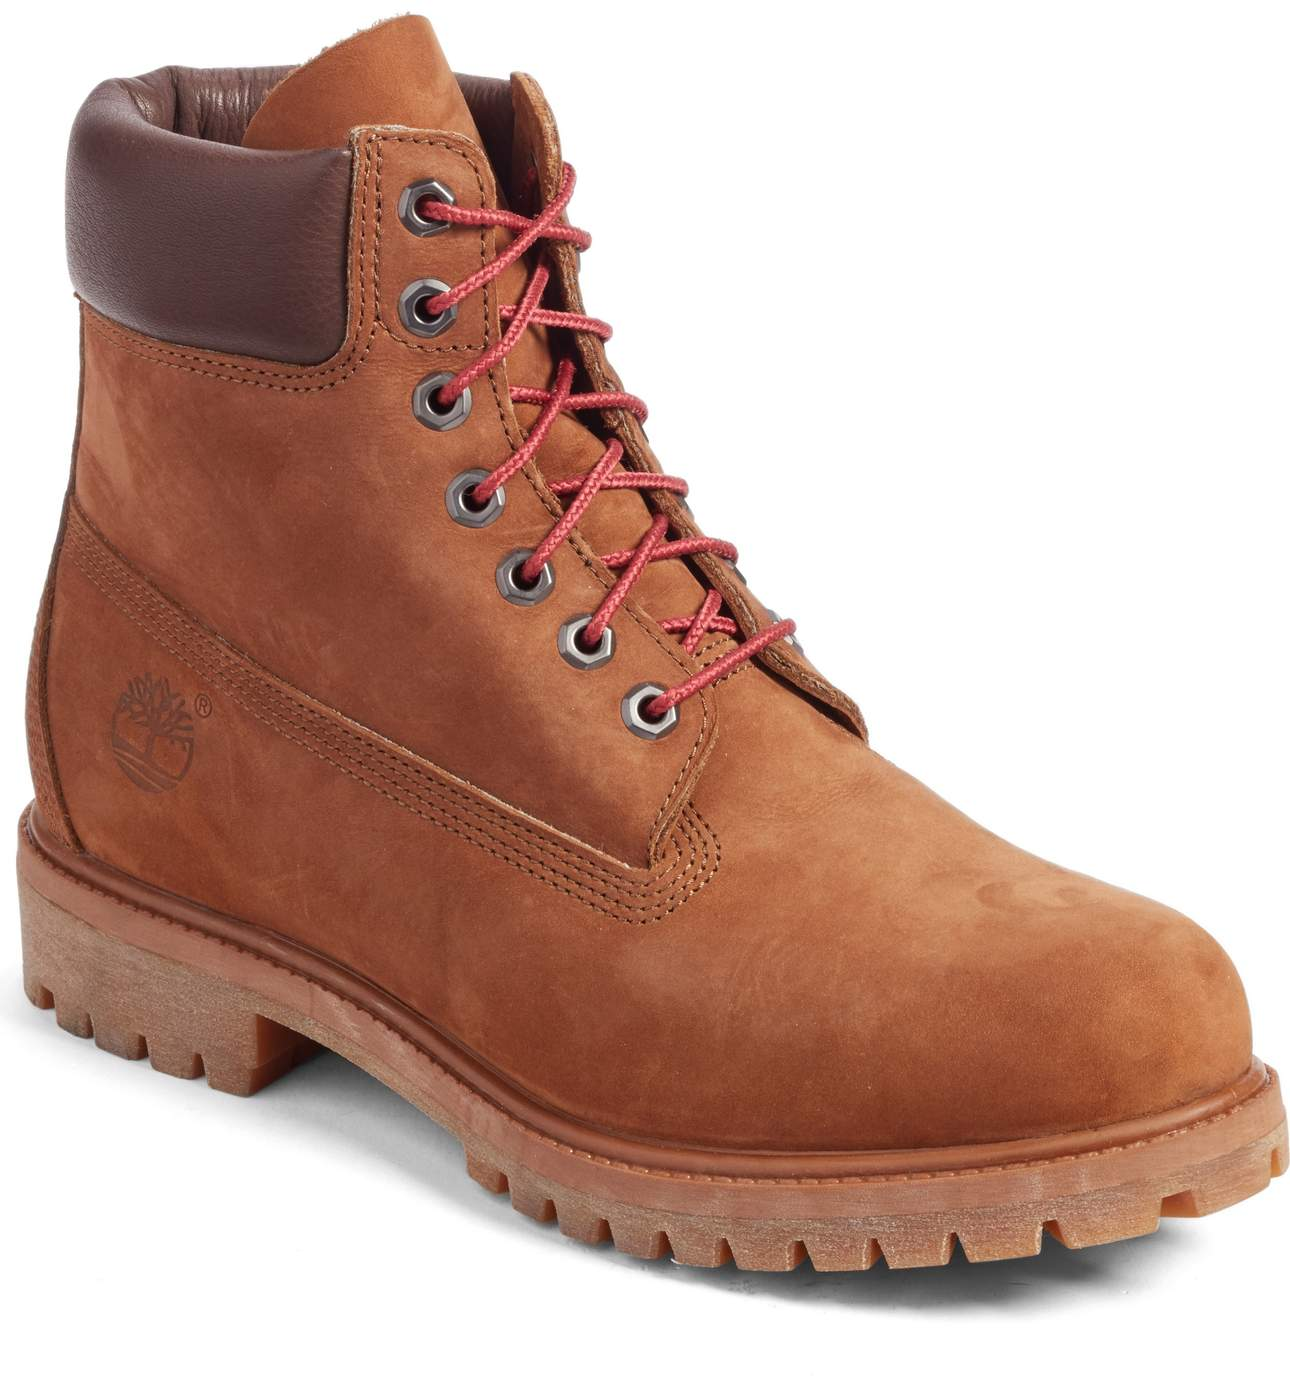 Timberland Boot - It's time to toss those old snow boots and usher in this must-have alternative.